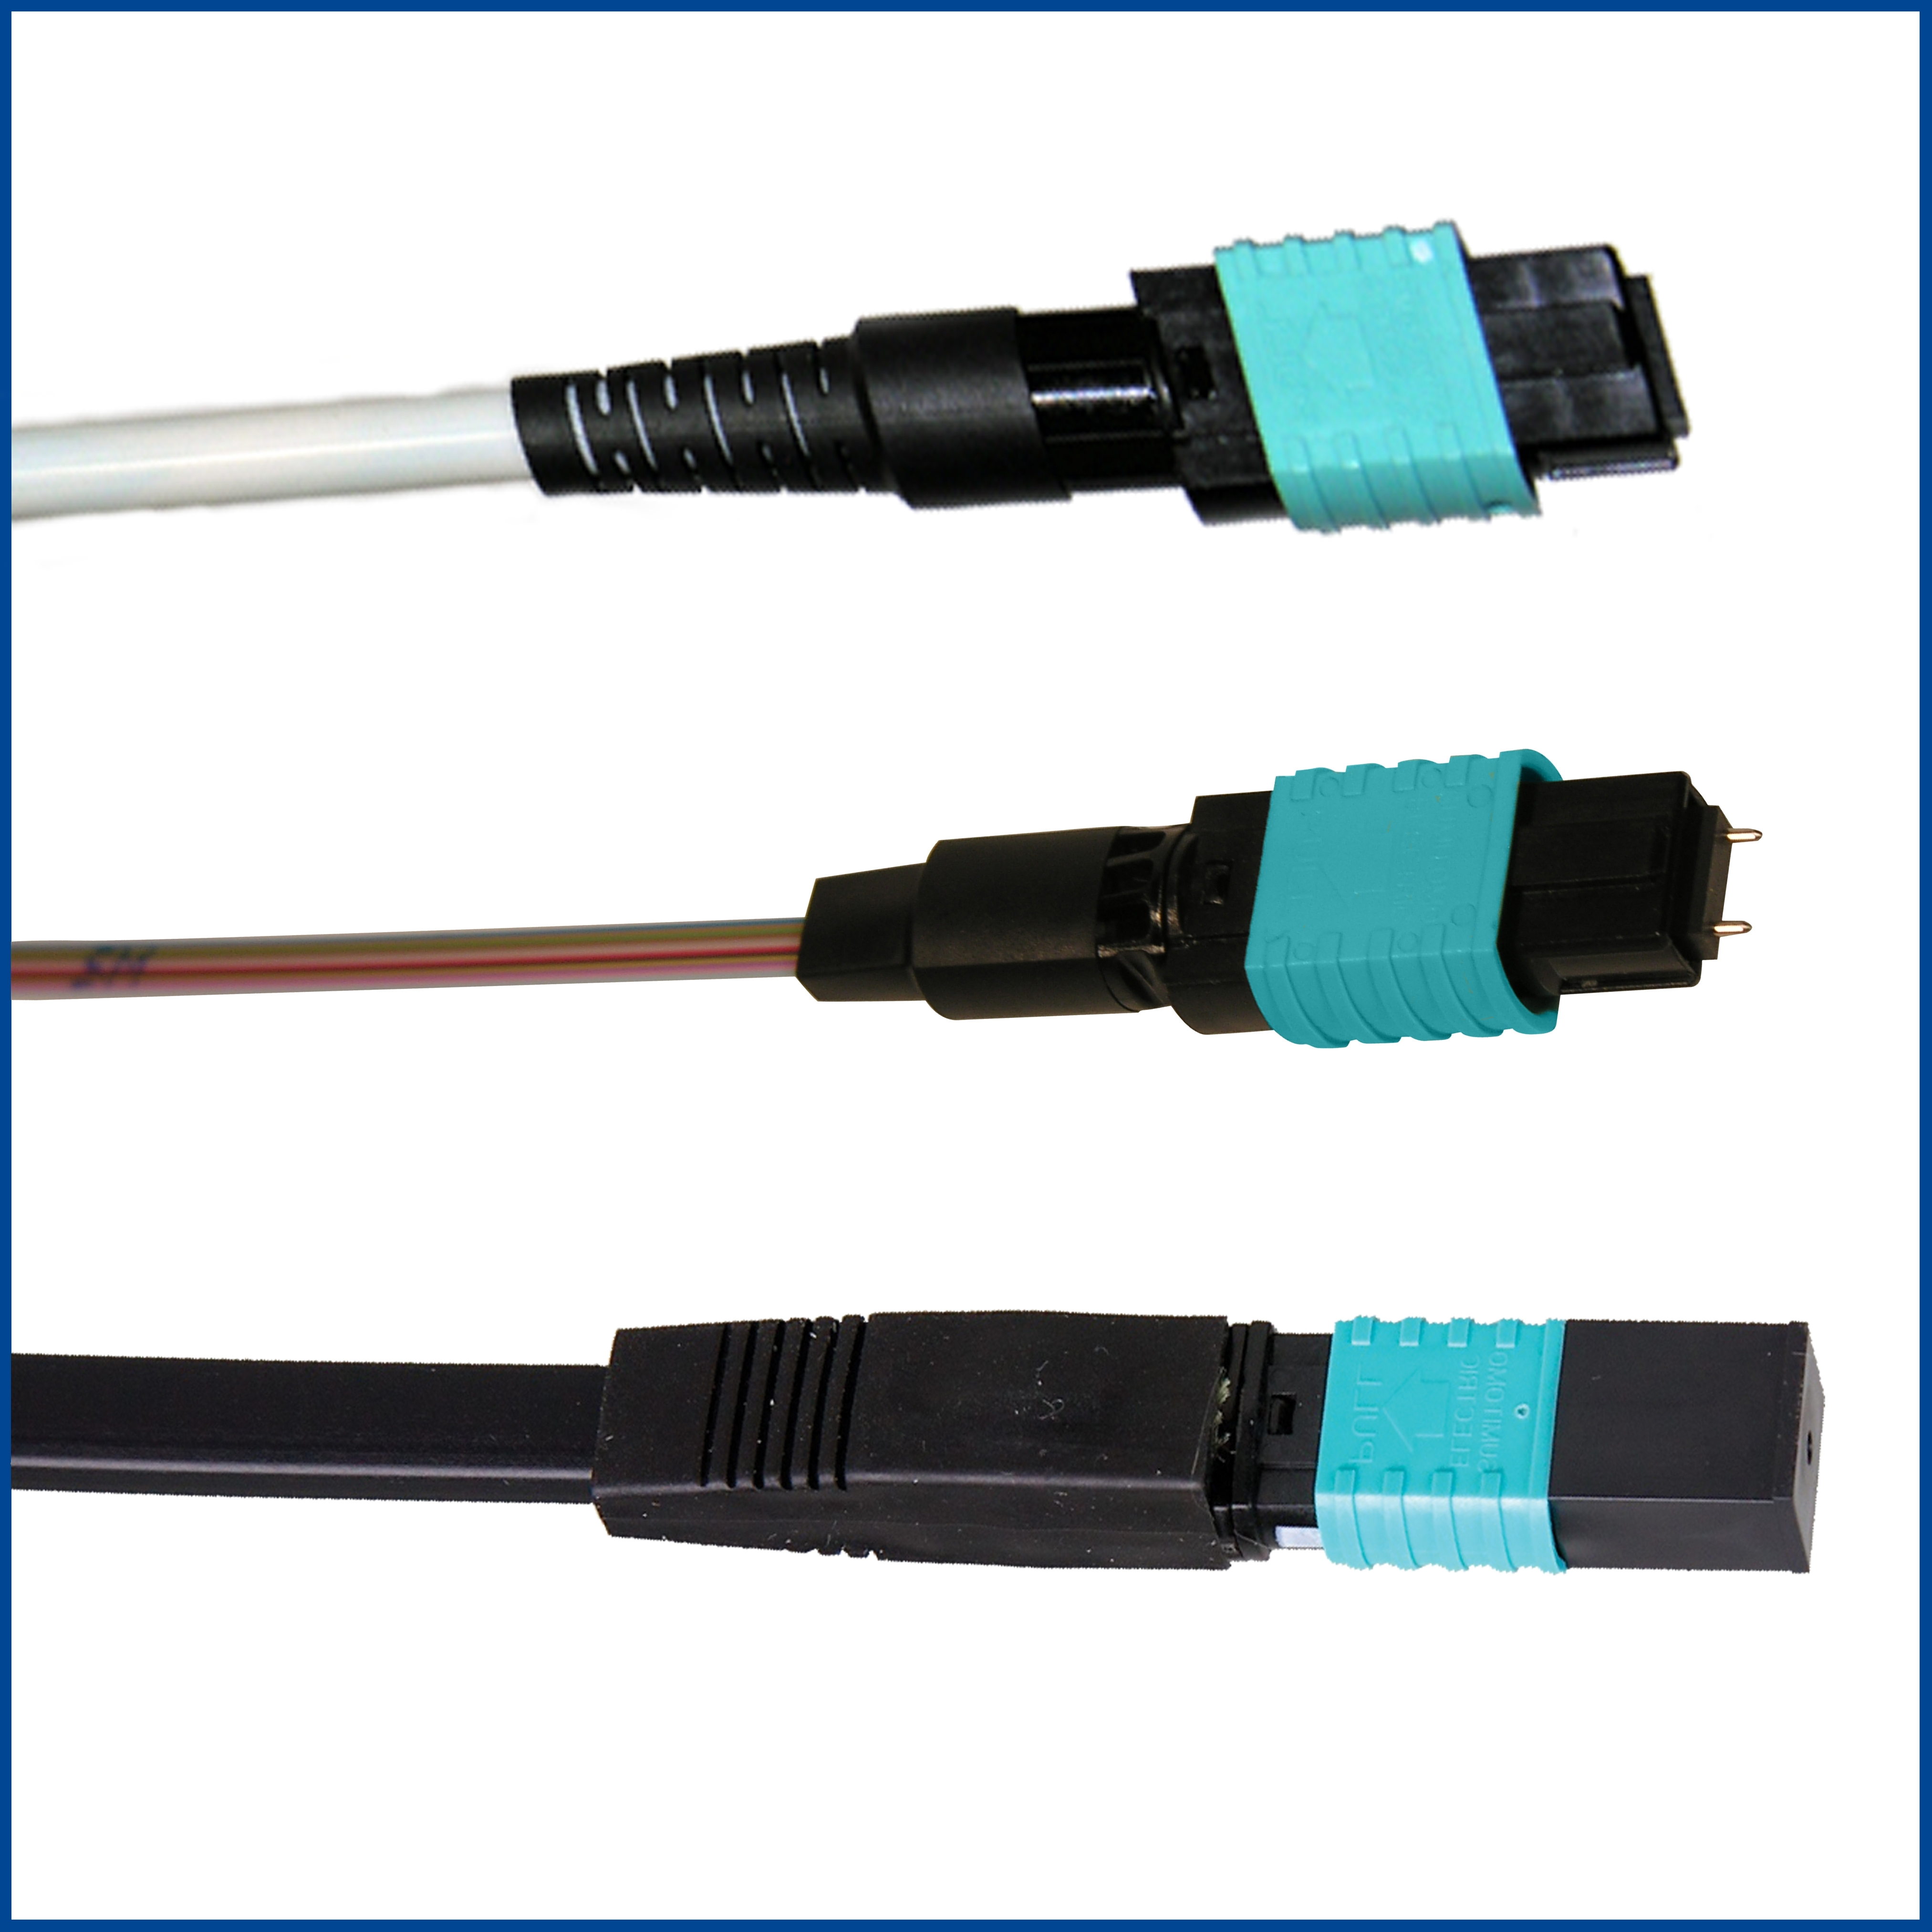 Wire Splicing Connectors For 8 Center Denk Additionally Cat 6 Wiring Diagram On T568a Standard Sumitomo Electric Lightwave Launches Industry S First And Only Rh Businesswire Com Speaker Splice